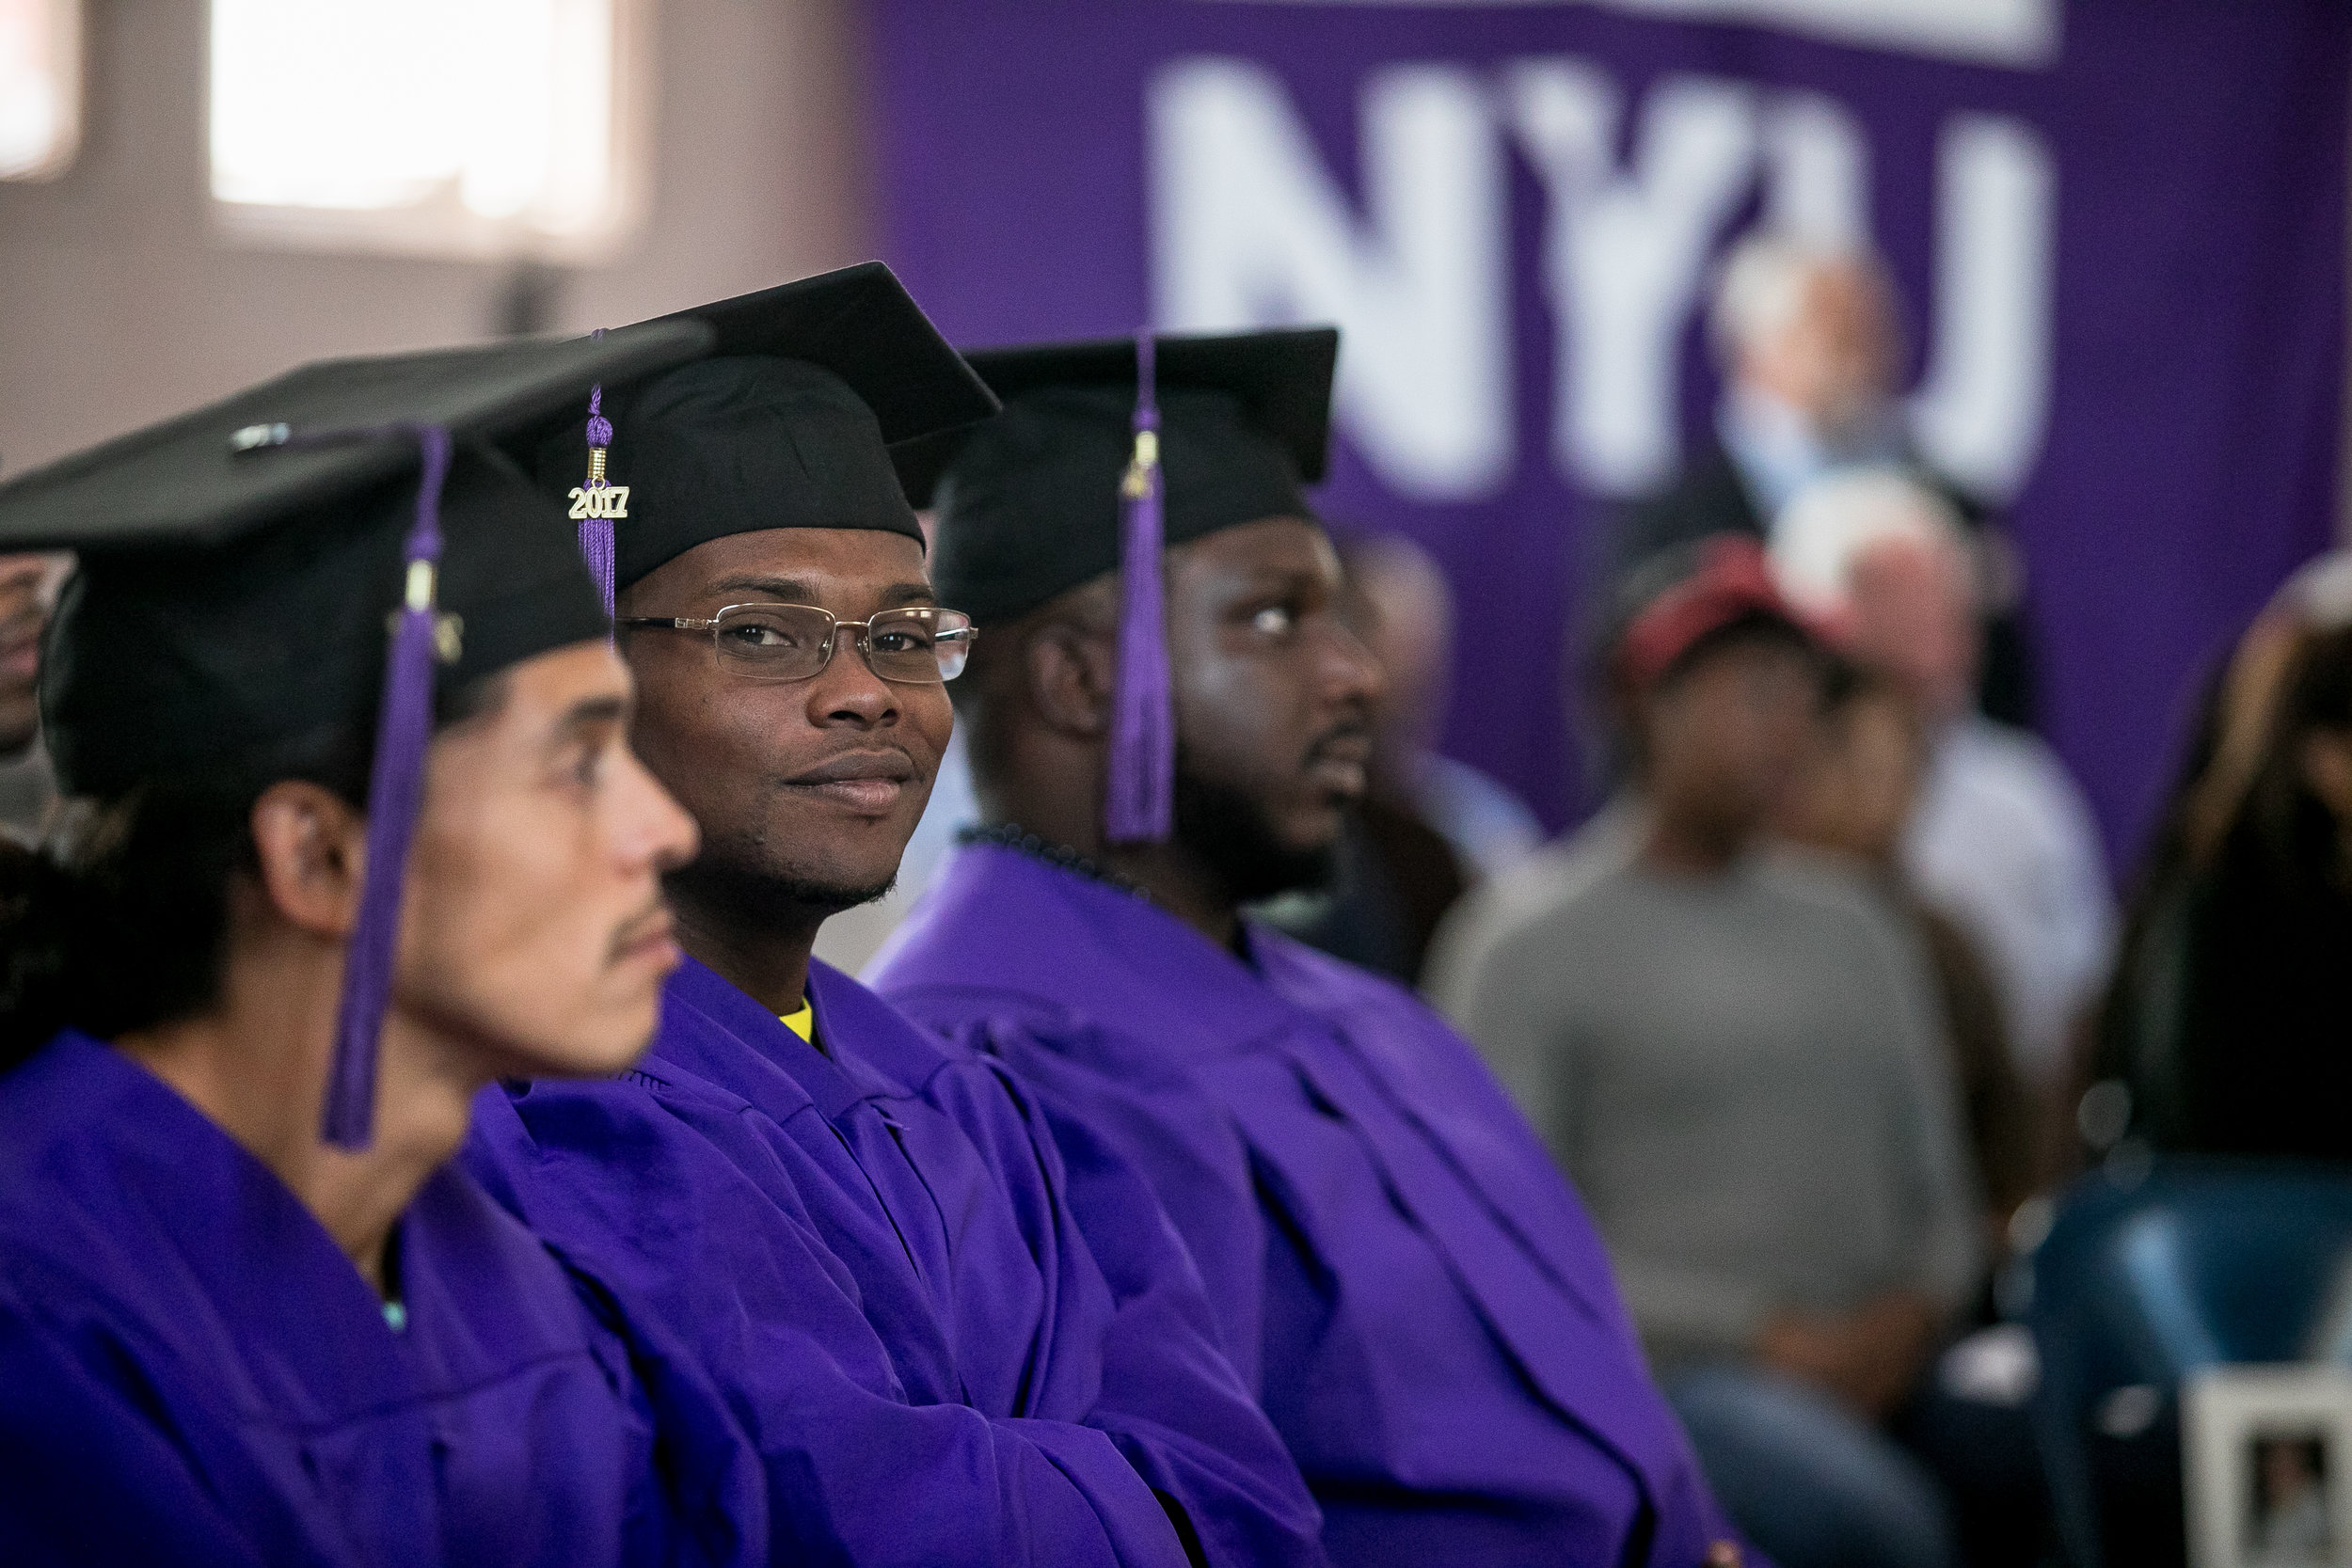 The graduates completed their coursework while incarcerated at Wallkill Correctional Facility.